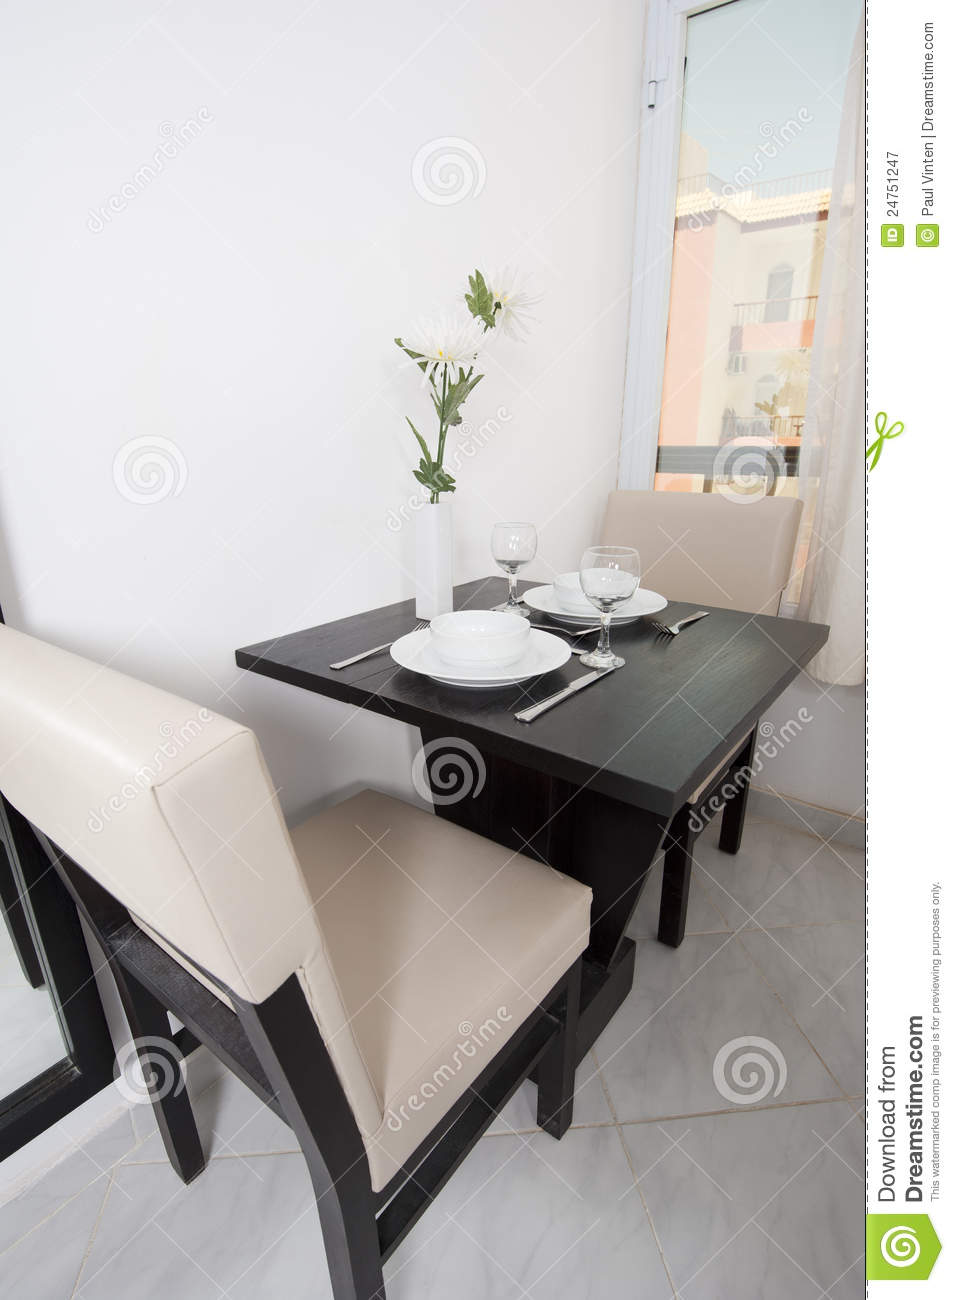 Small Dining Table In An Apartment Royalty Free Stock Photography ...